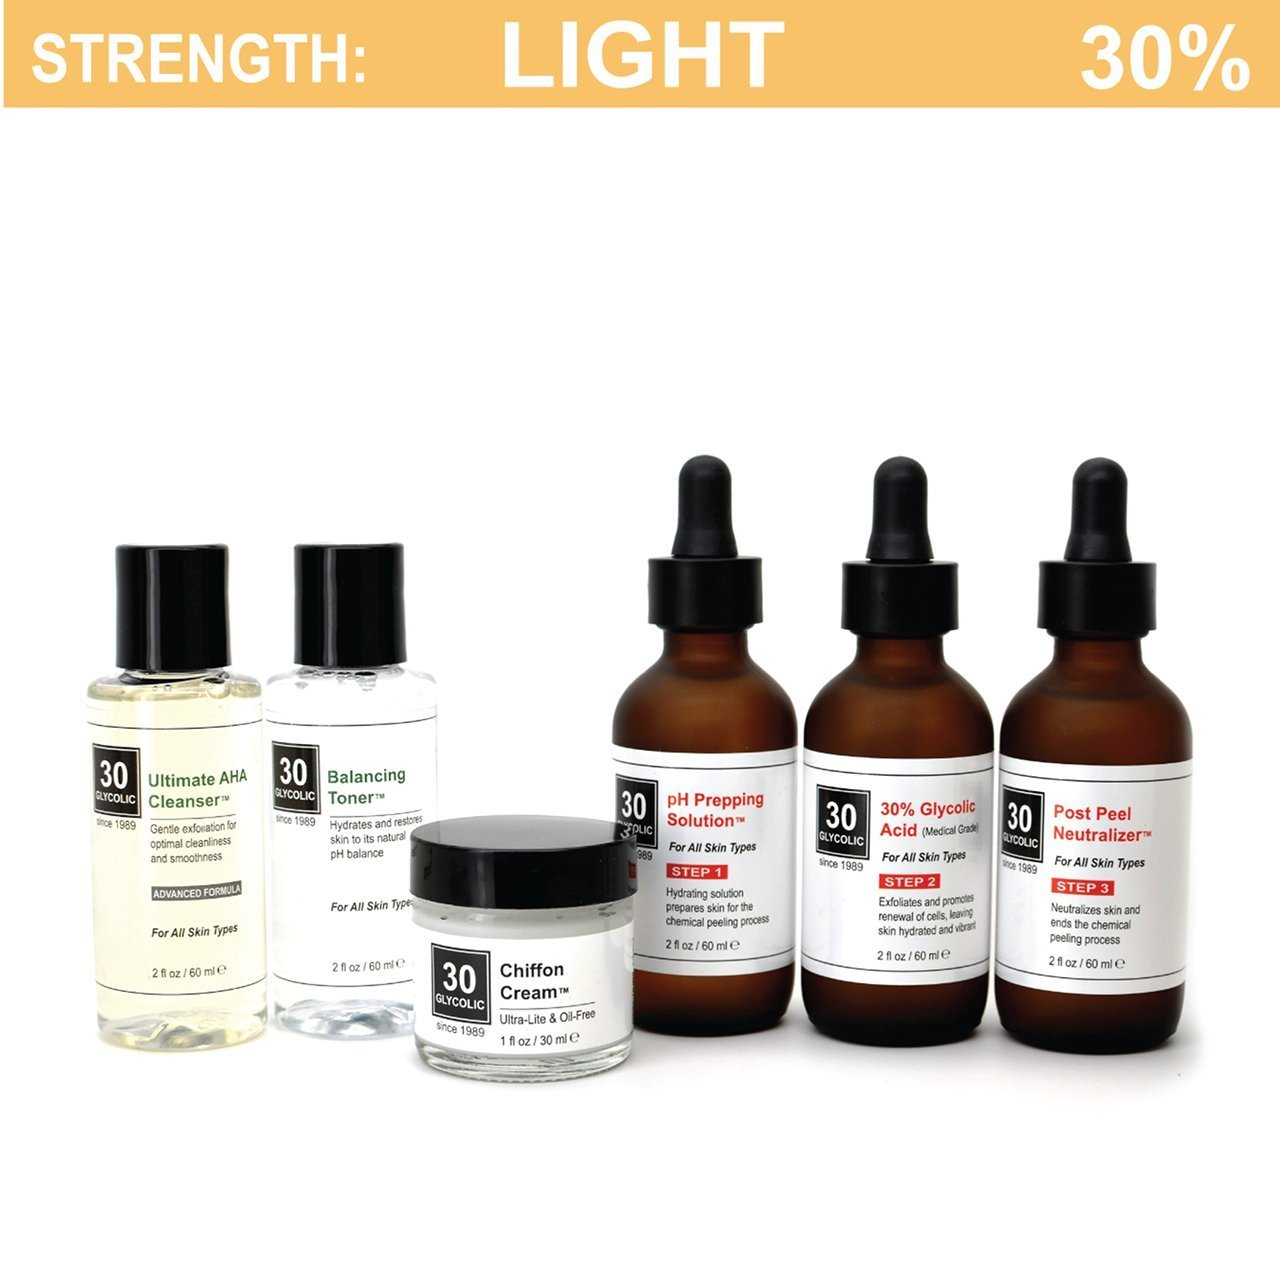 30% Glycolic Peel System for Acne/Oily/Combo Skin - FREE $45 Cleanser/Toner/Cream INCLUDED